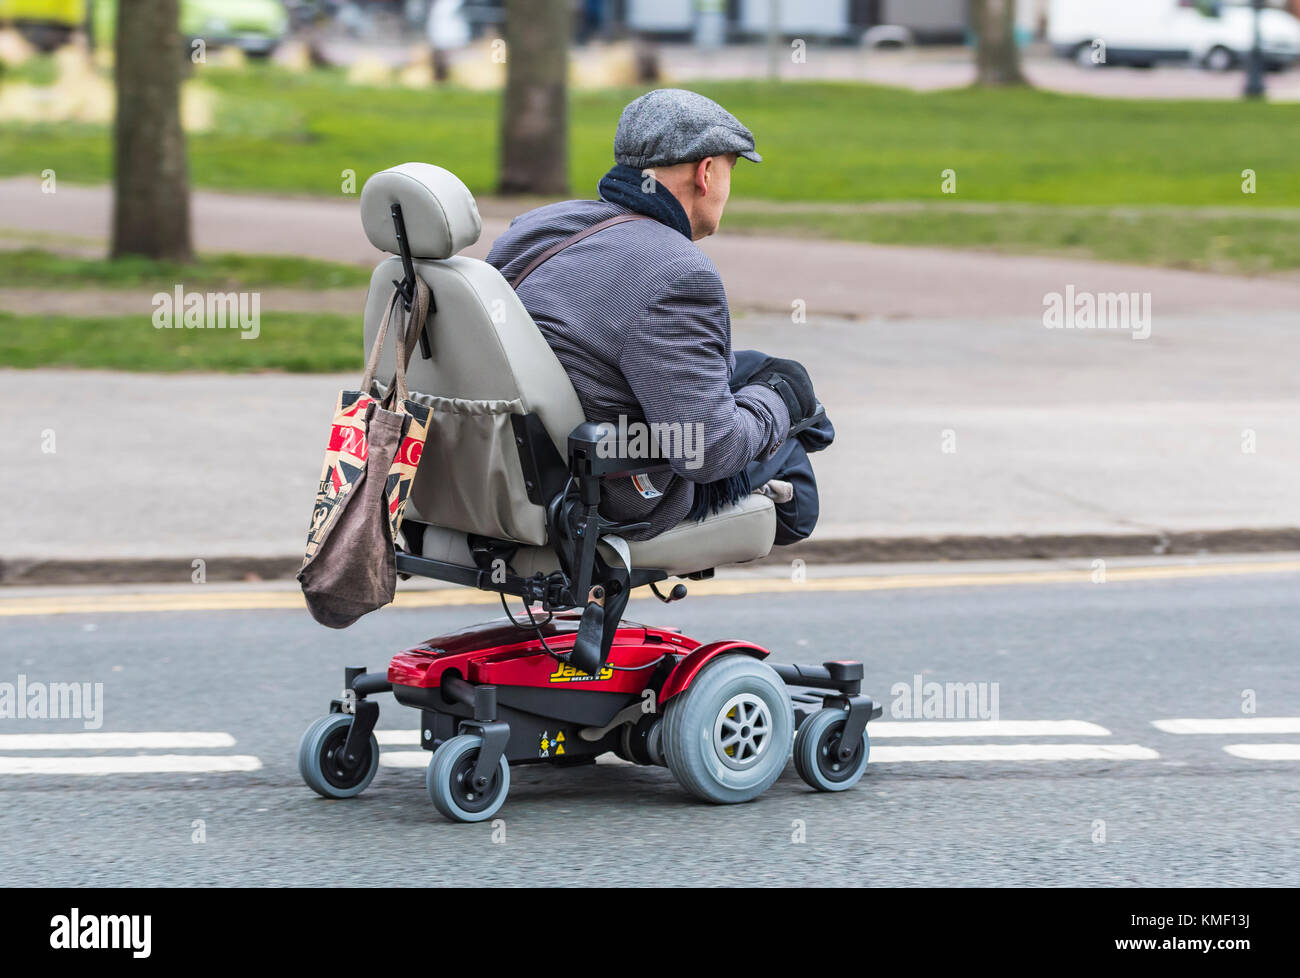 Double amputee man with no legs riding in a mobility scooter on a road in the UK. - Stock Image